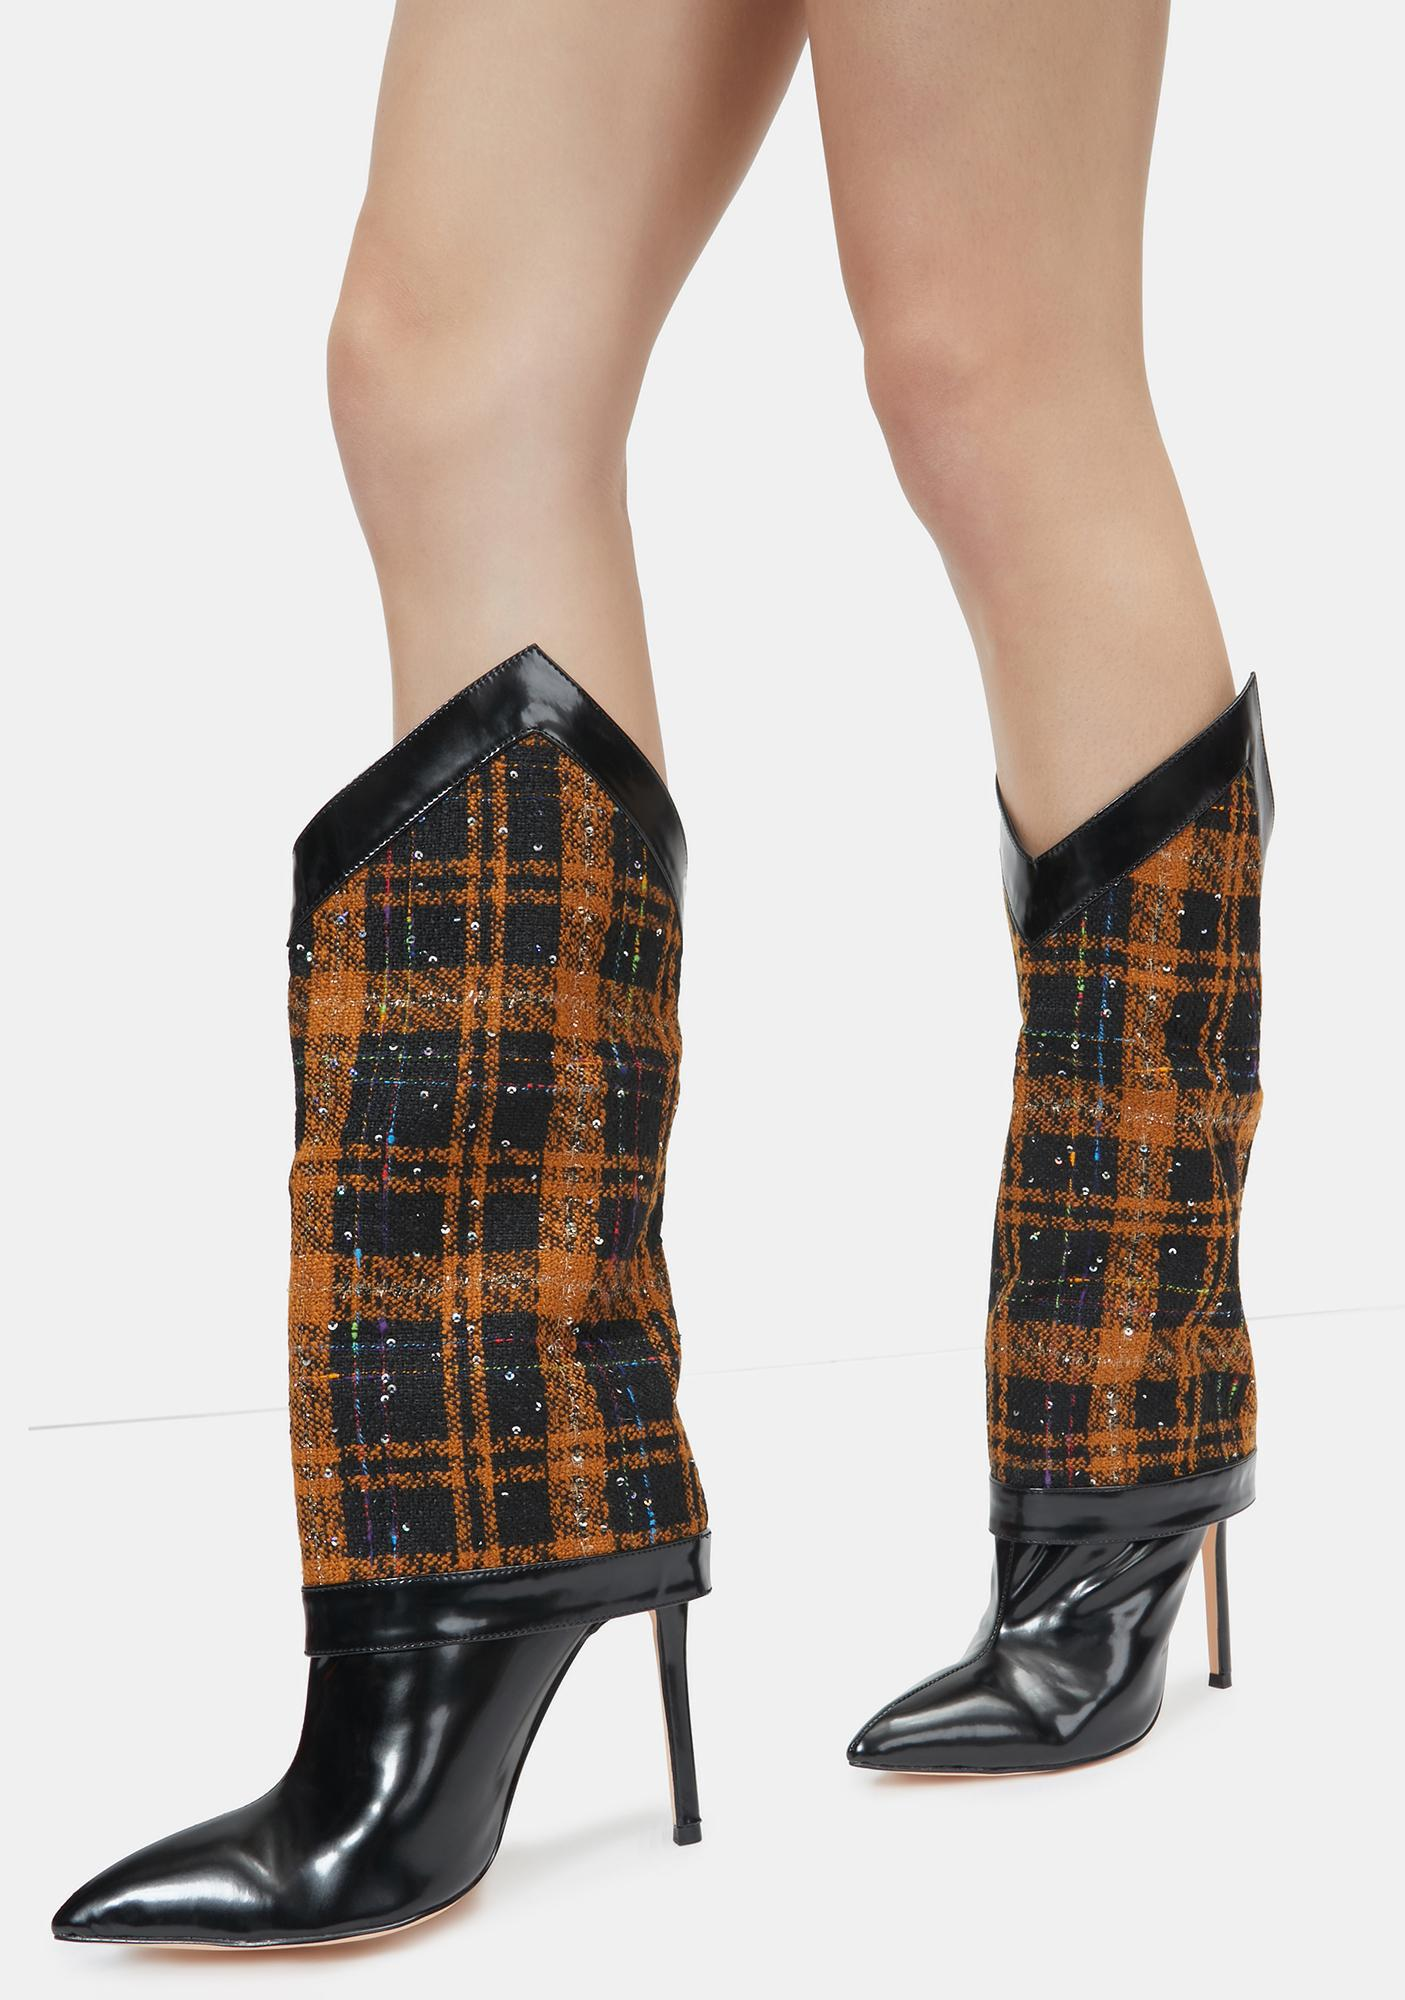 Lemon Drop by Privileged Katalina Knee High Boots